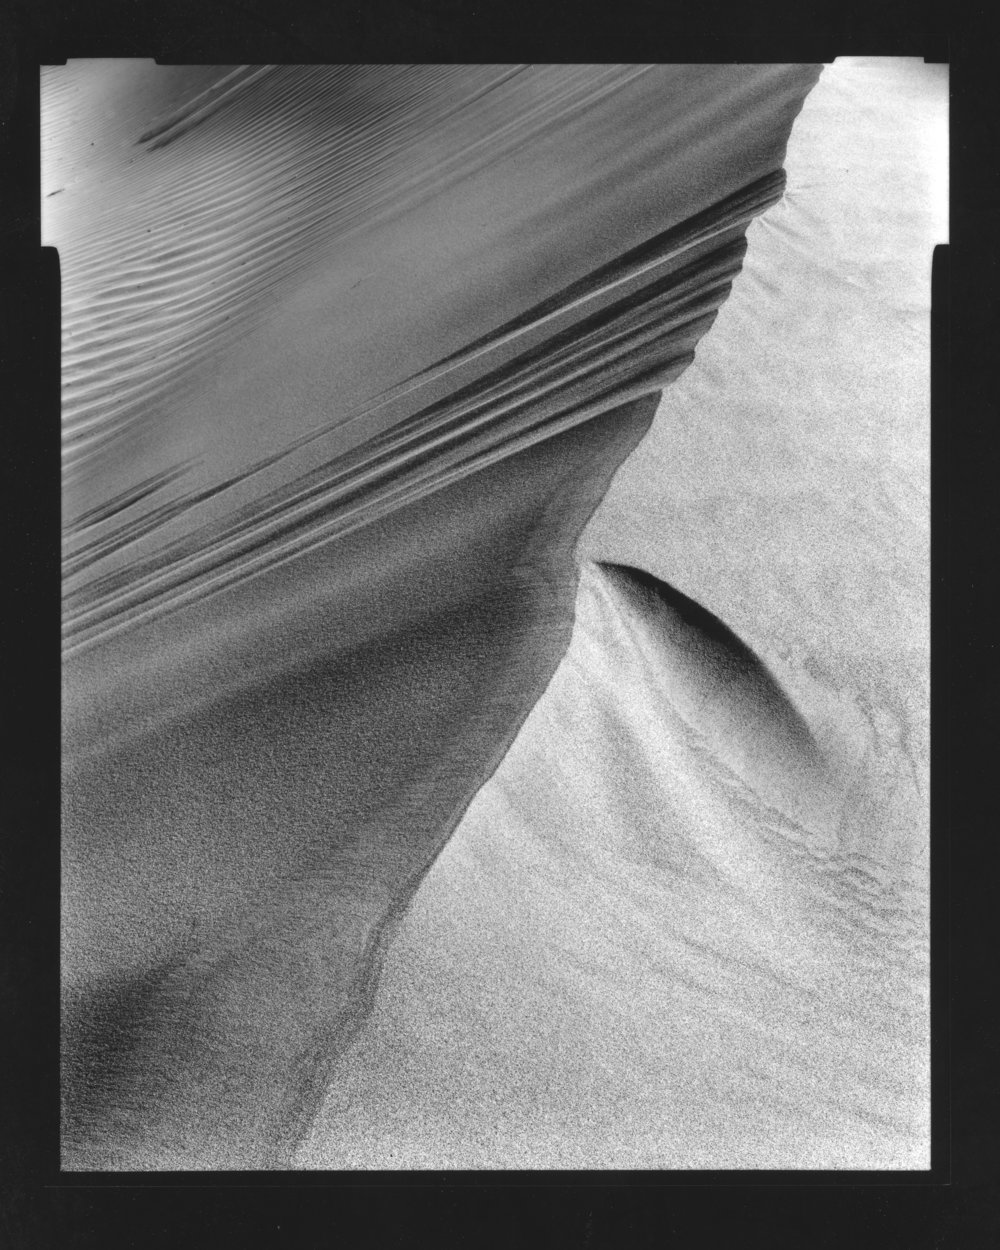 4x5 Contact Print. Dune, Death Valley